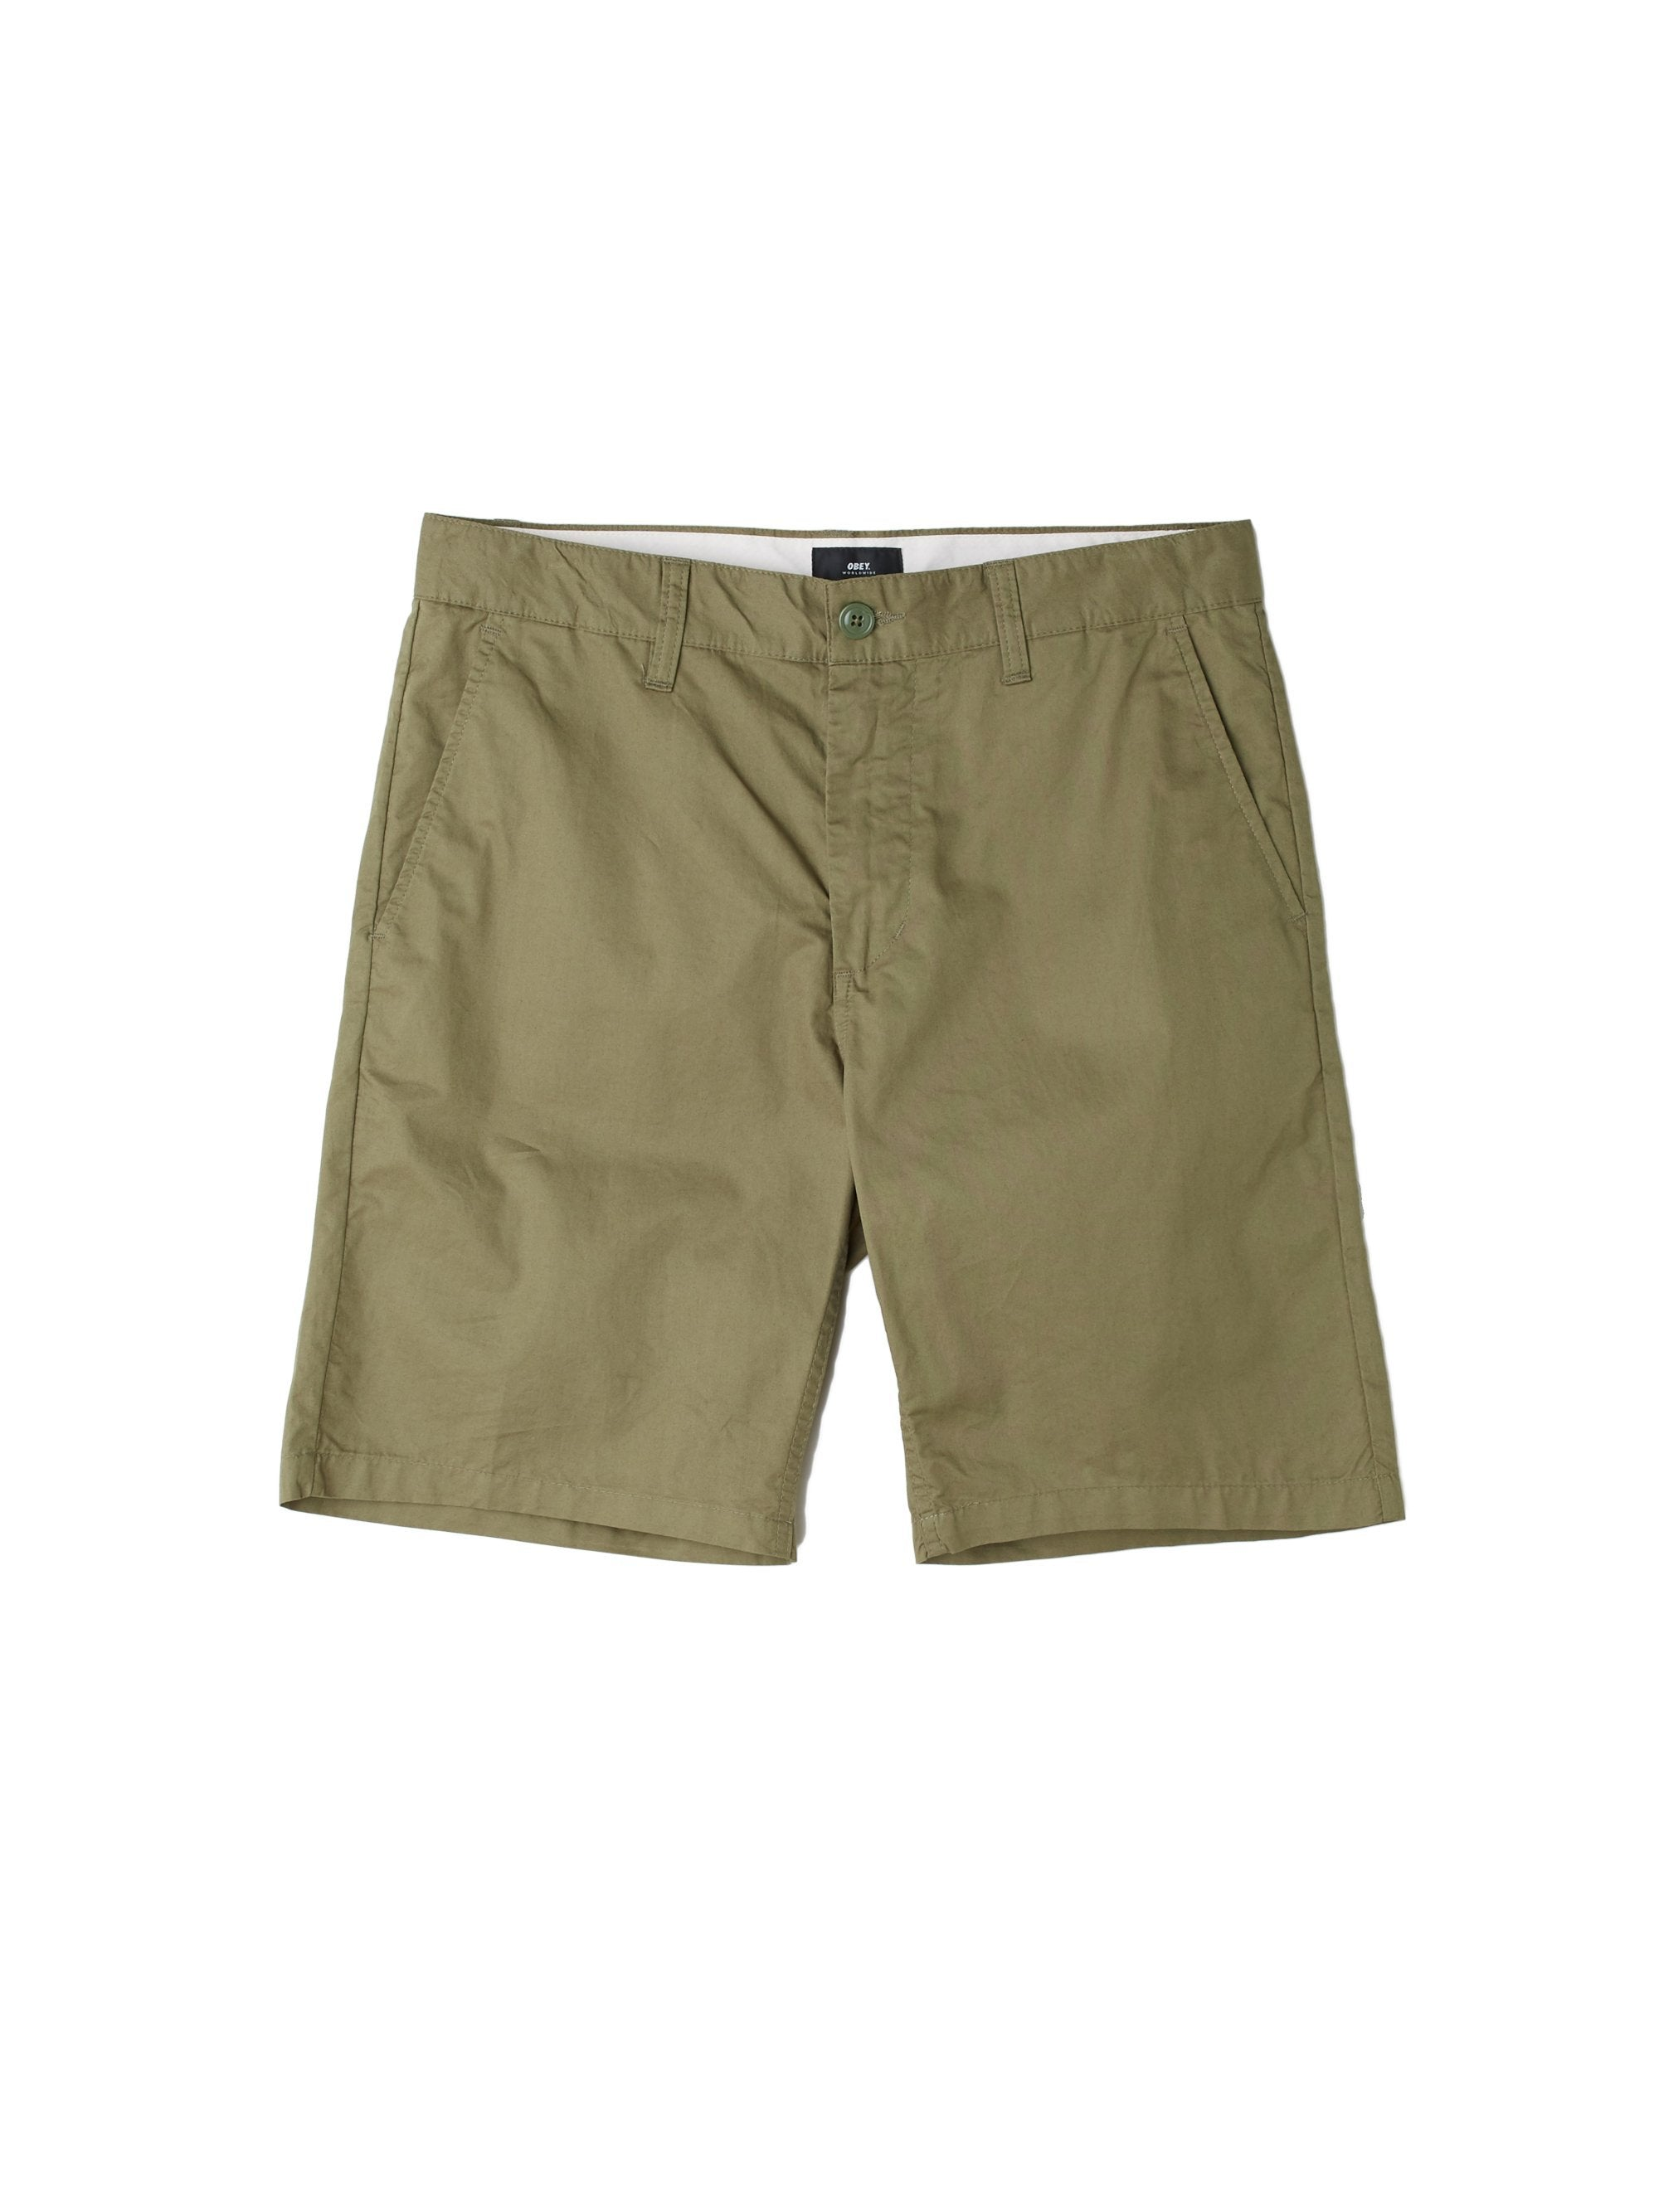 OBEY M'S SHORTS ARMY 30 STRAGGLER LIGHT SHORT